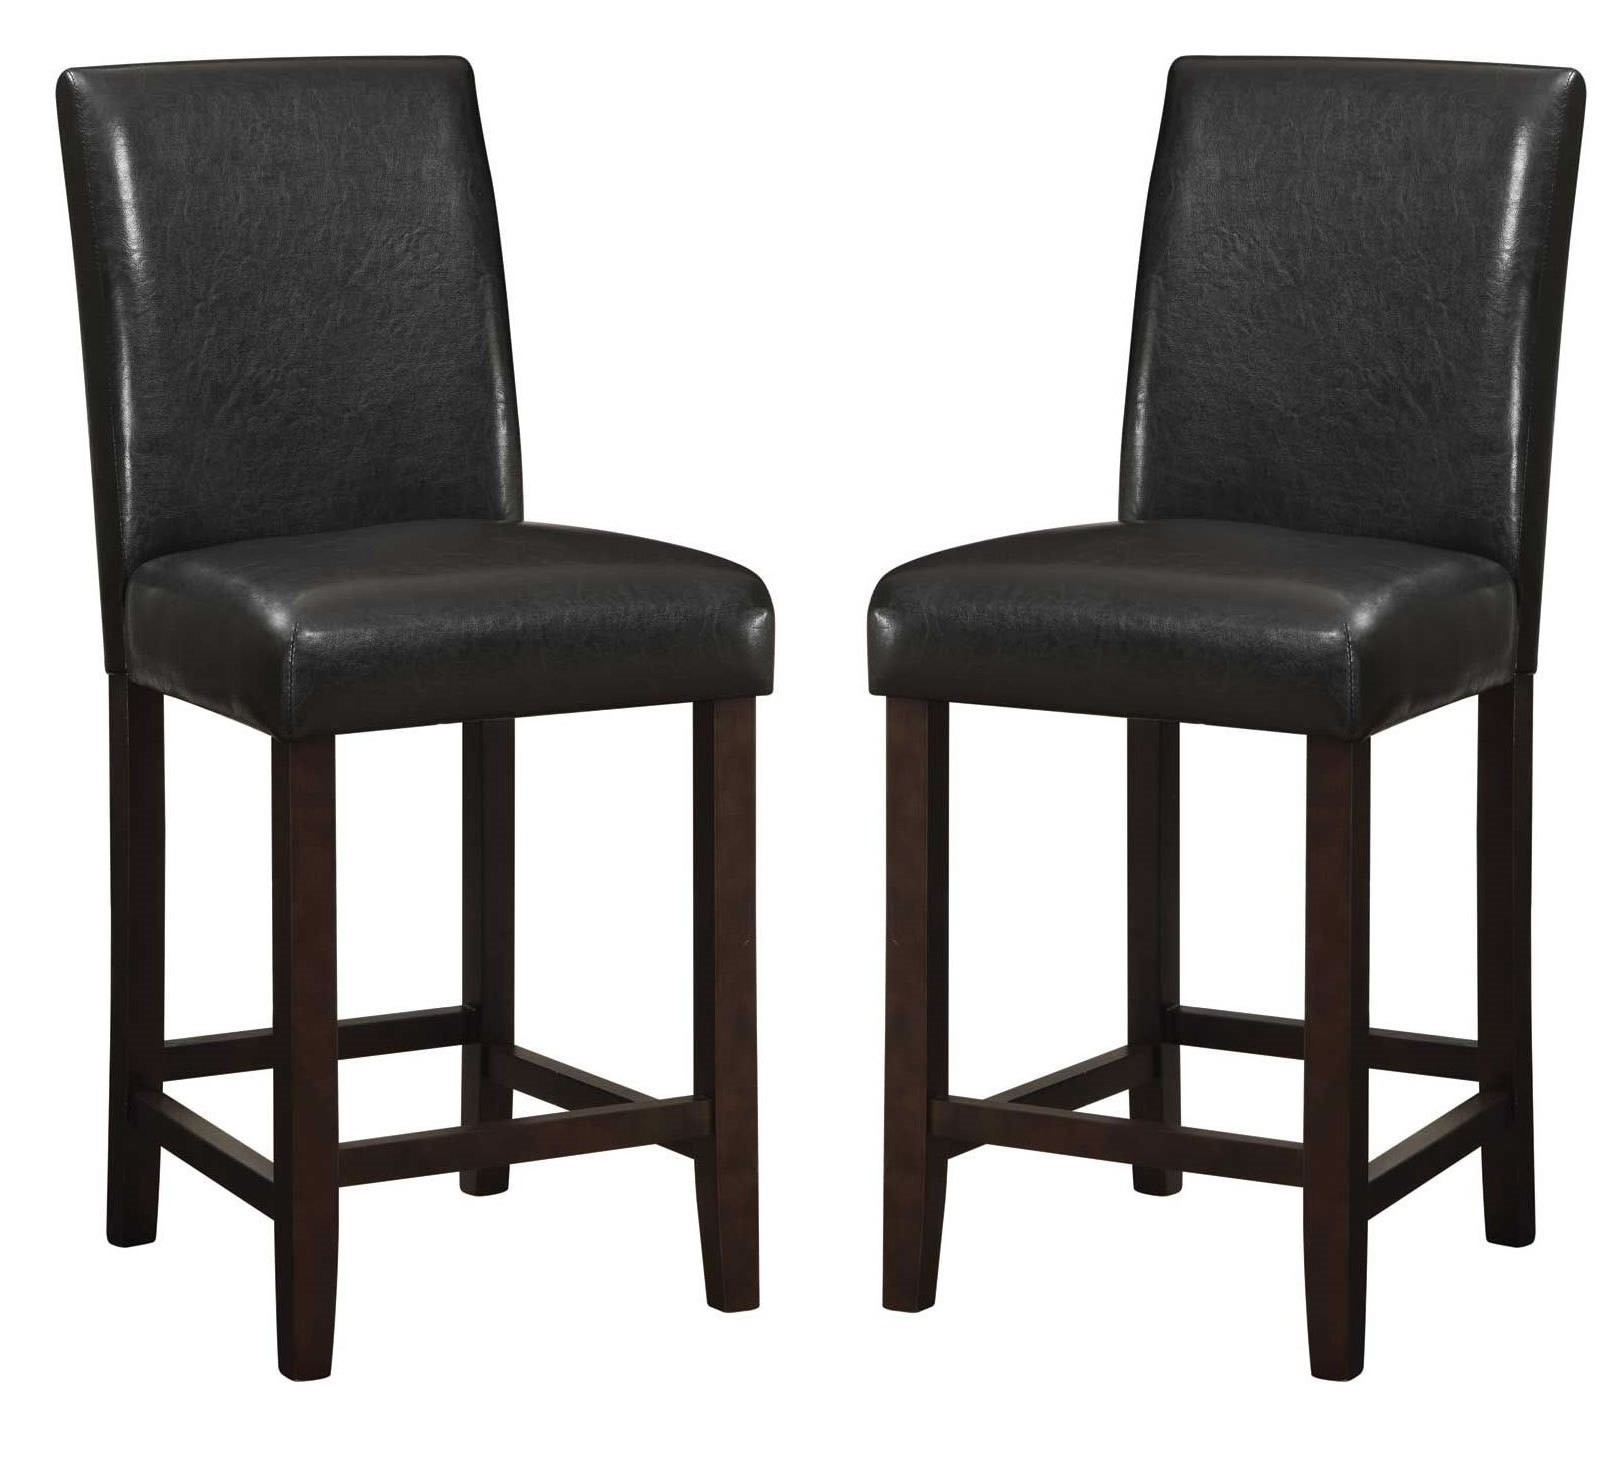 counter height chairs set of 2 small barcelona chair parson 24 quot bar stool from coaster